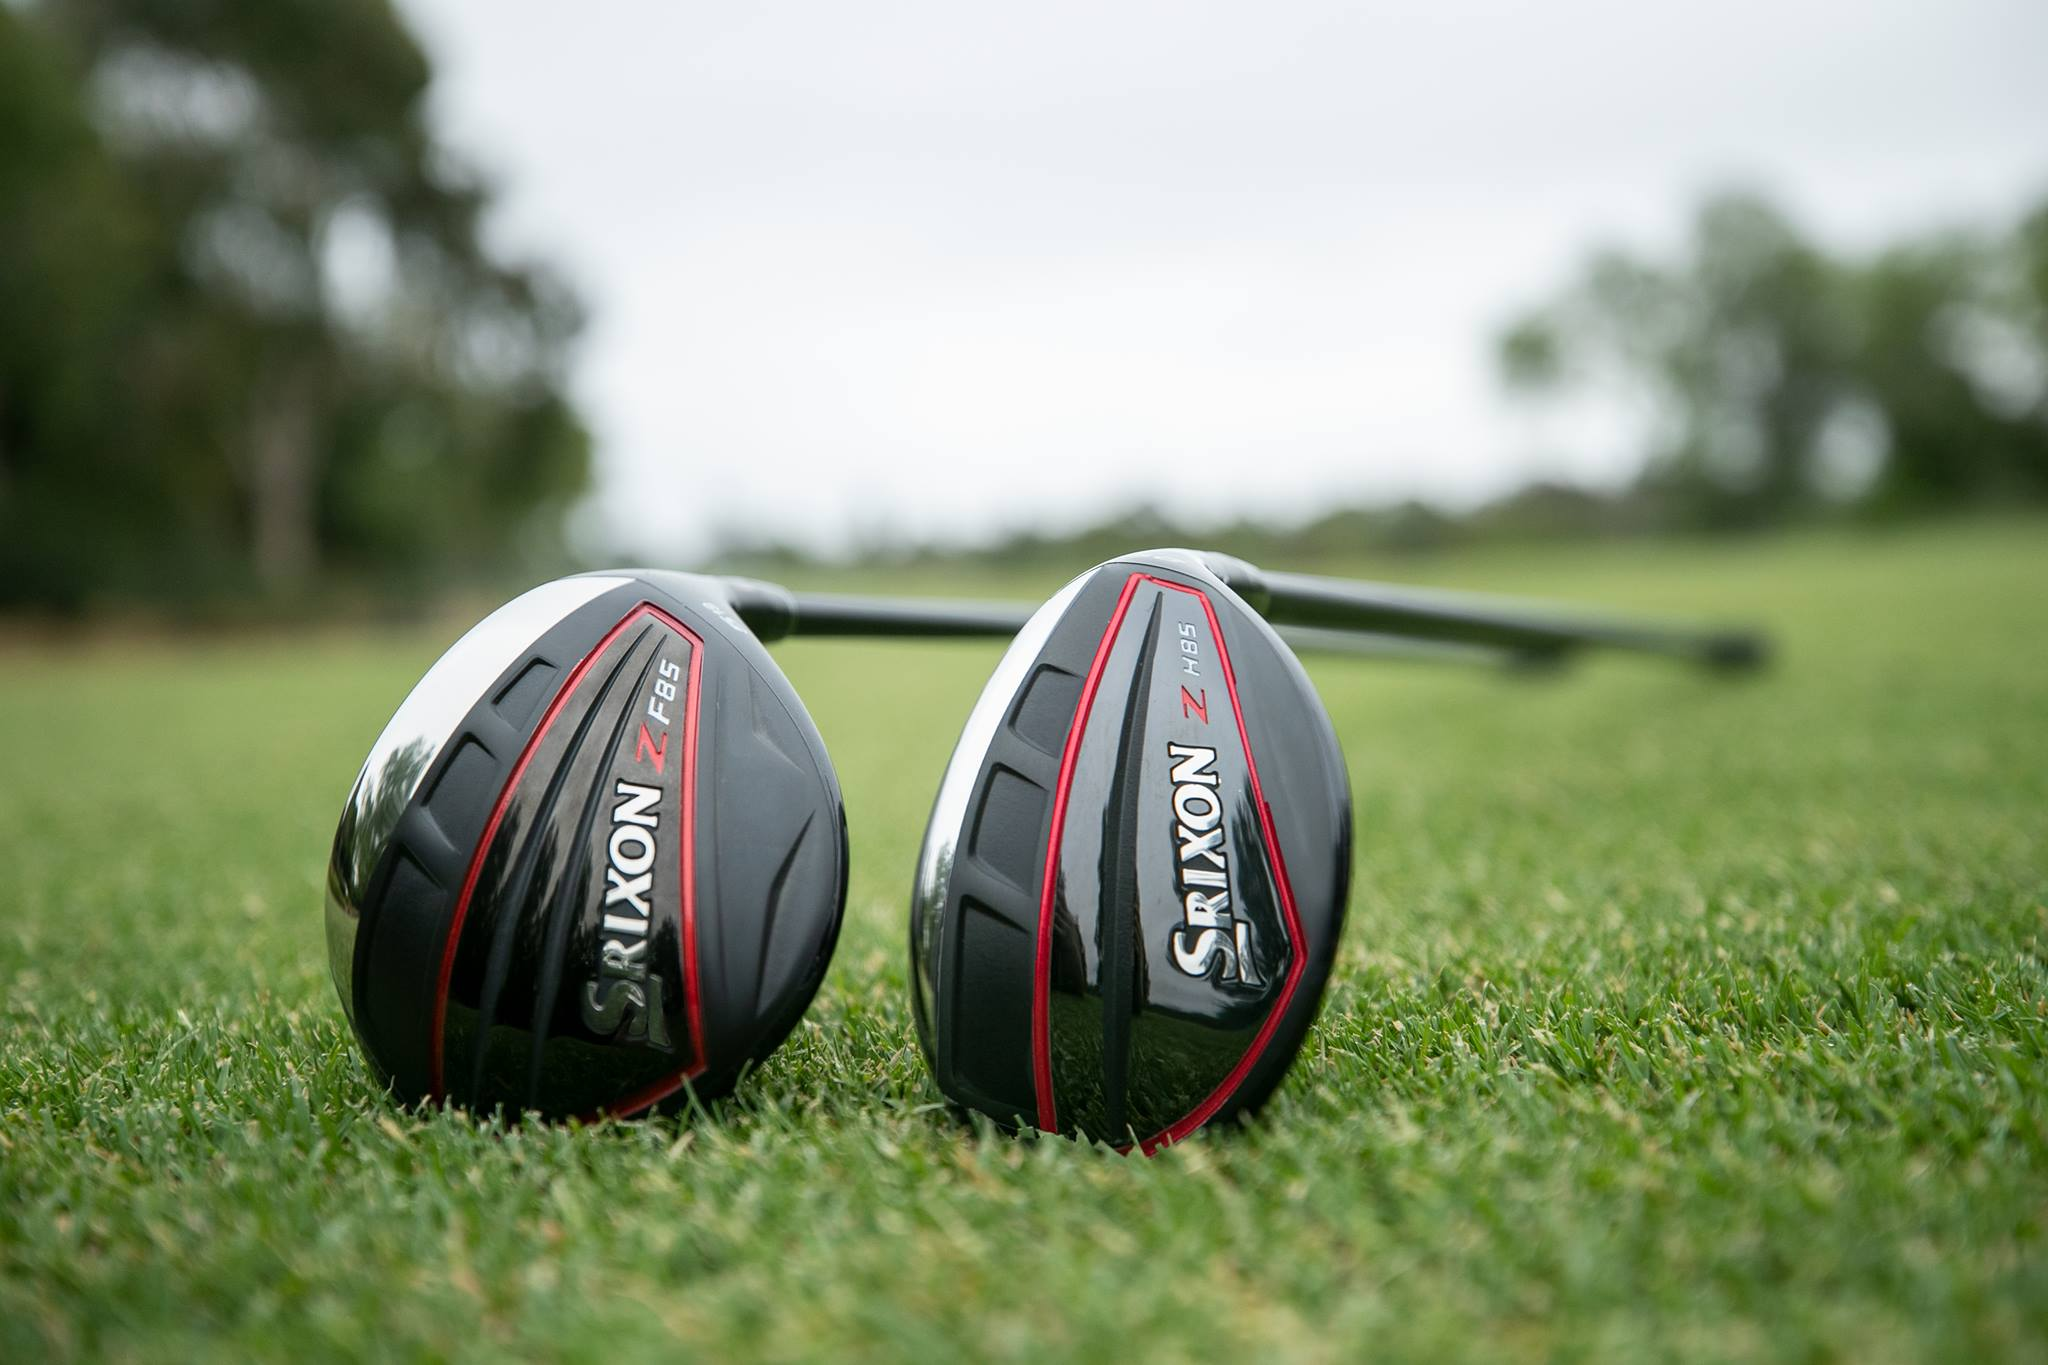 Srixon Golf Demo Day at Blue Hills Golf Course